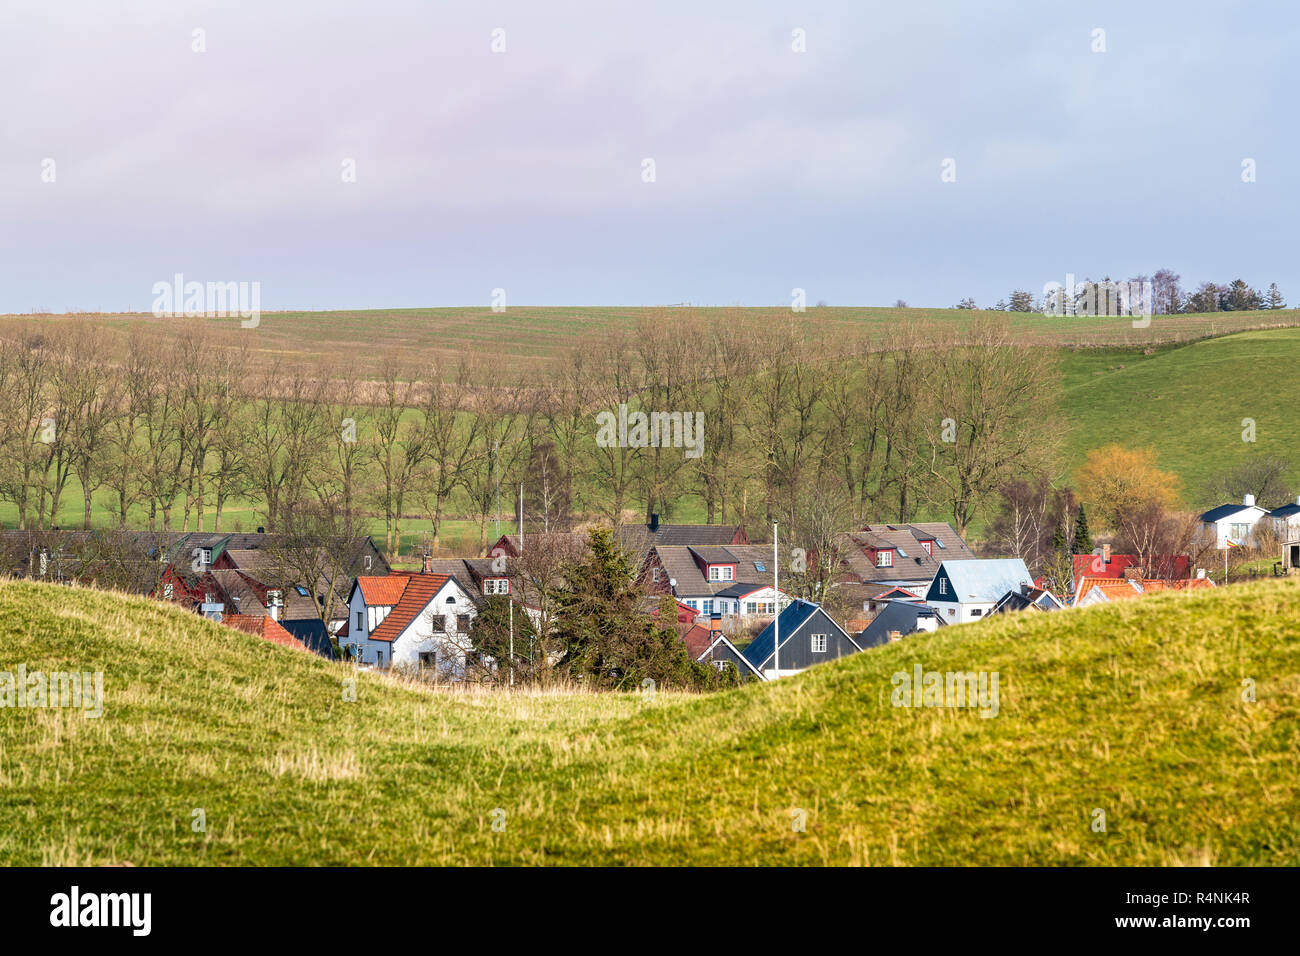 Scandinavian landscape in Scane County, south Sweden - Stock Image